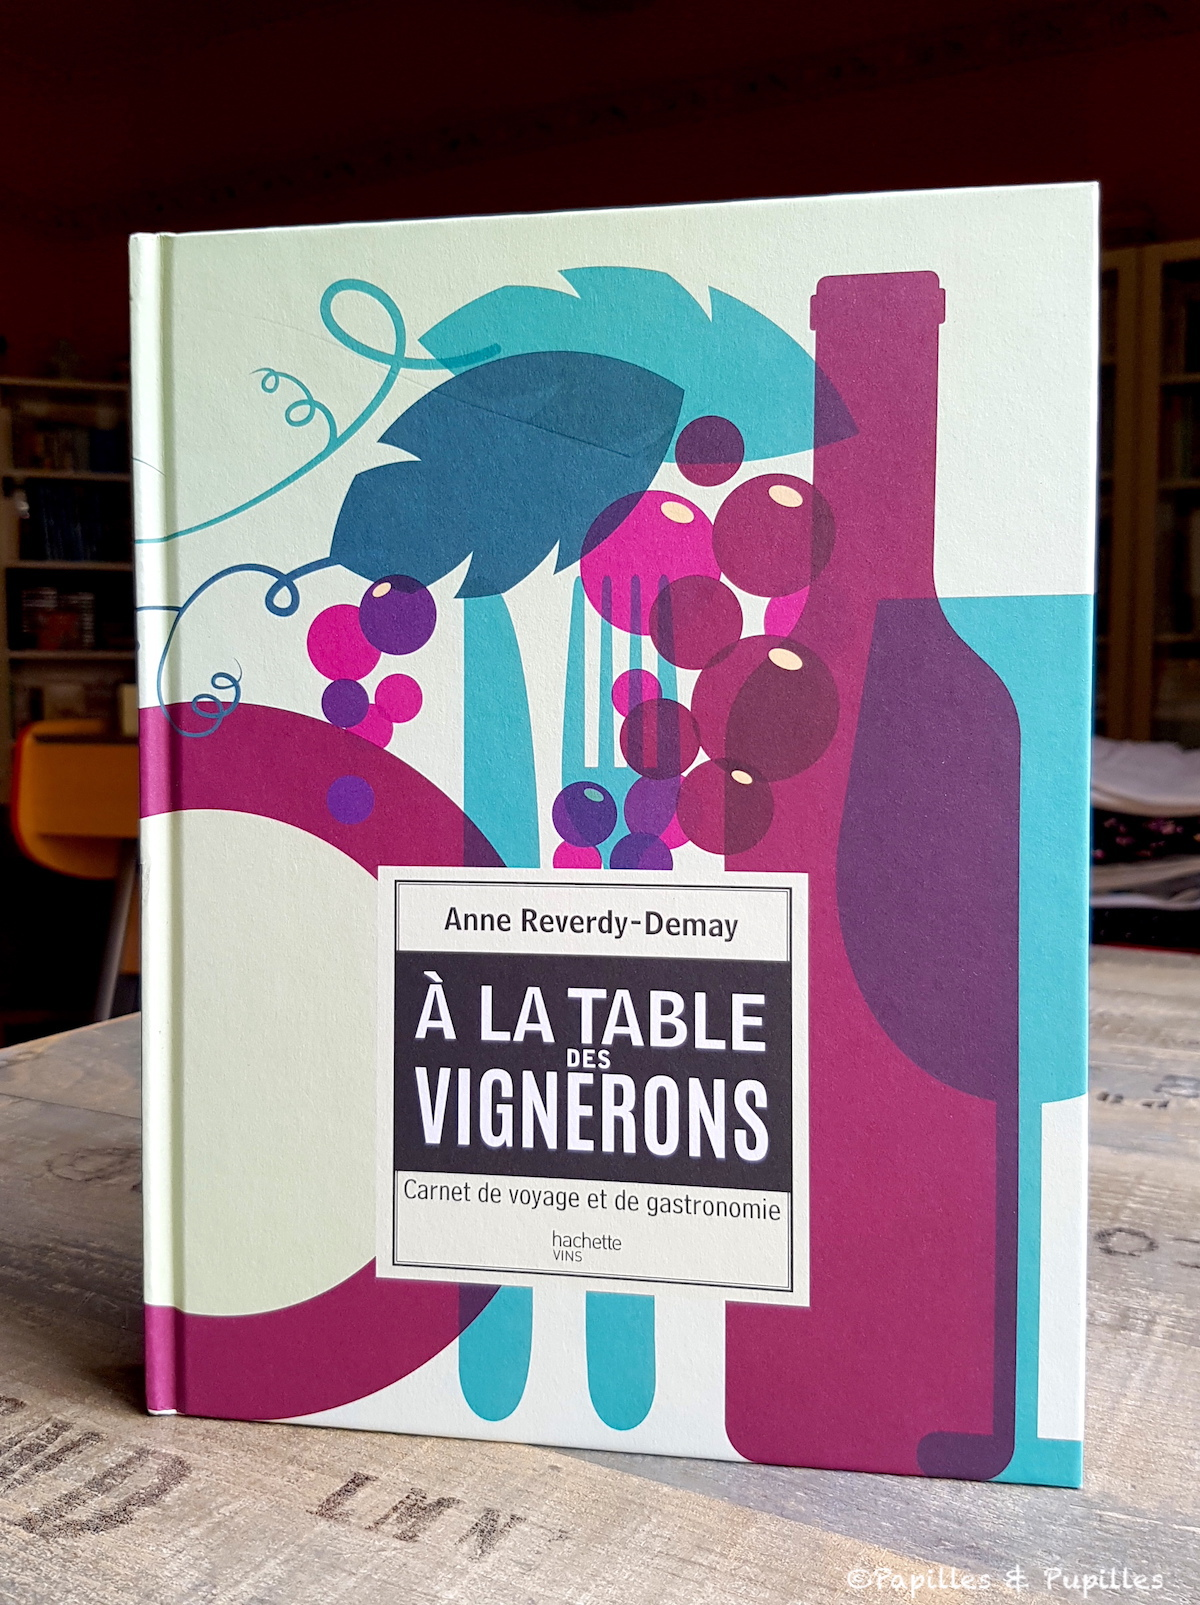 A la table des vignerons - Anne Reverdy-Demay